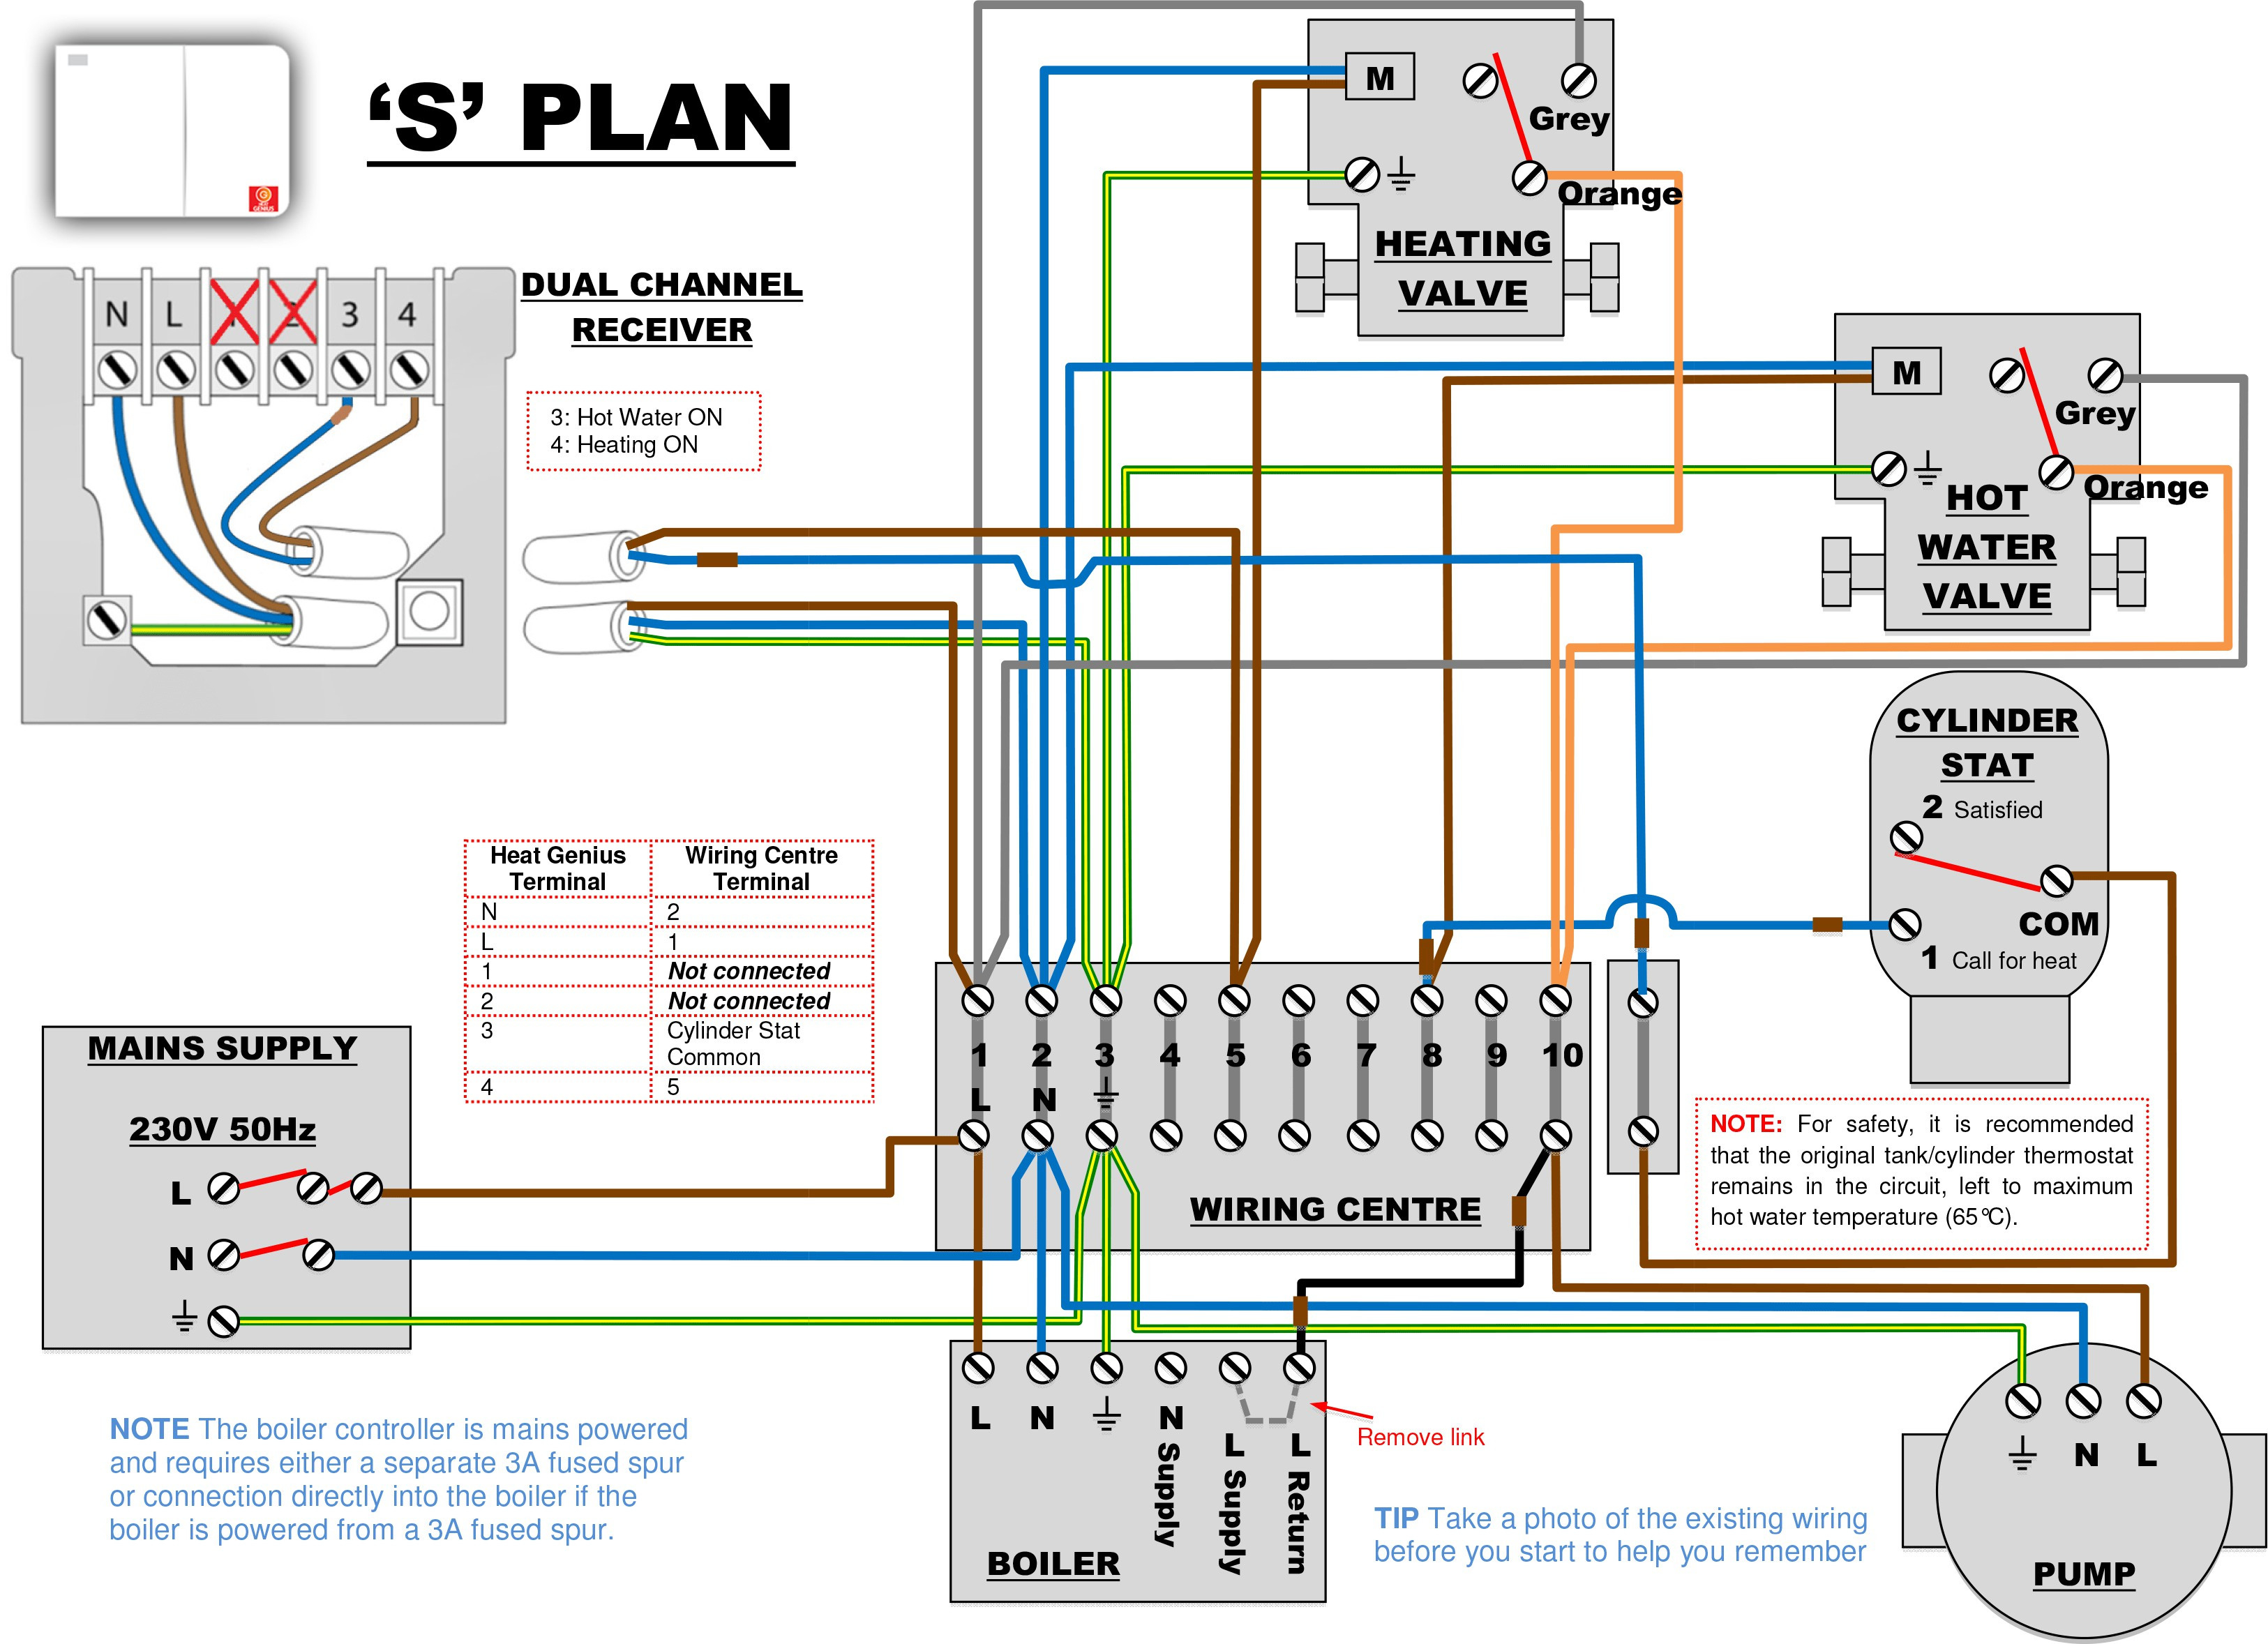 Wiring Diagram For The Nest Thermostat Sample